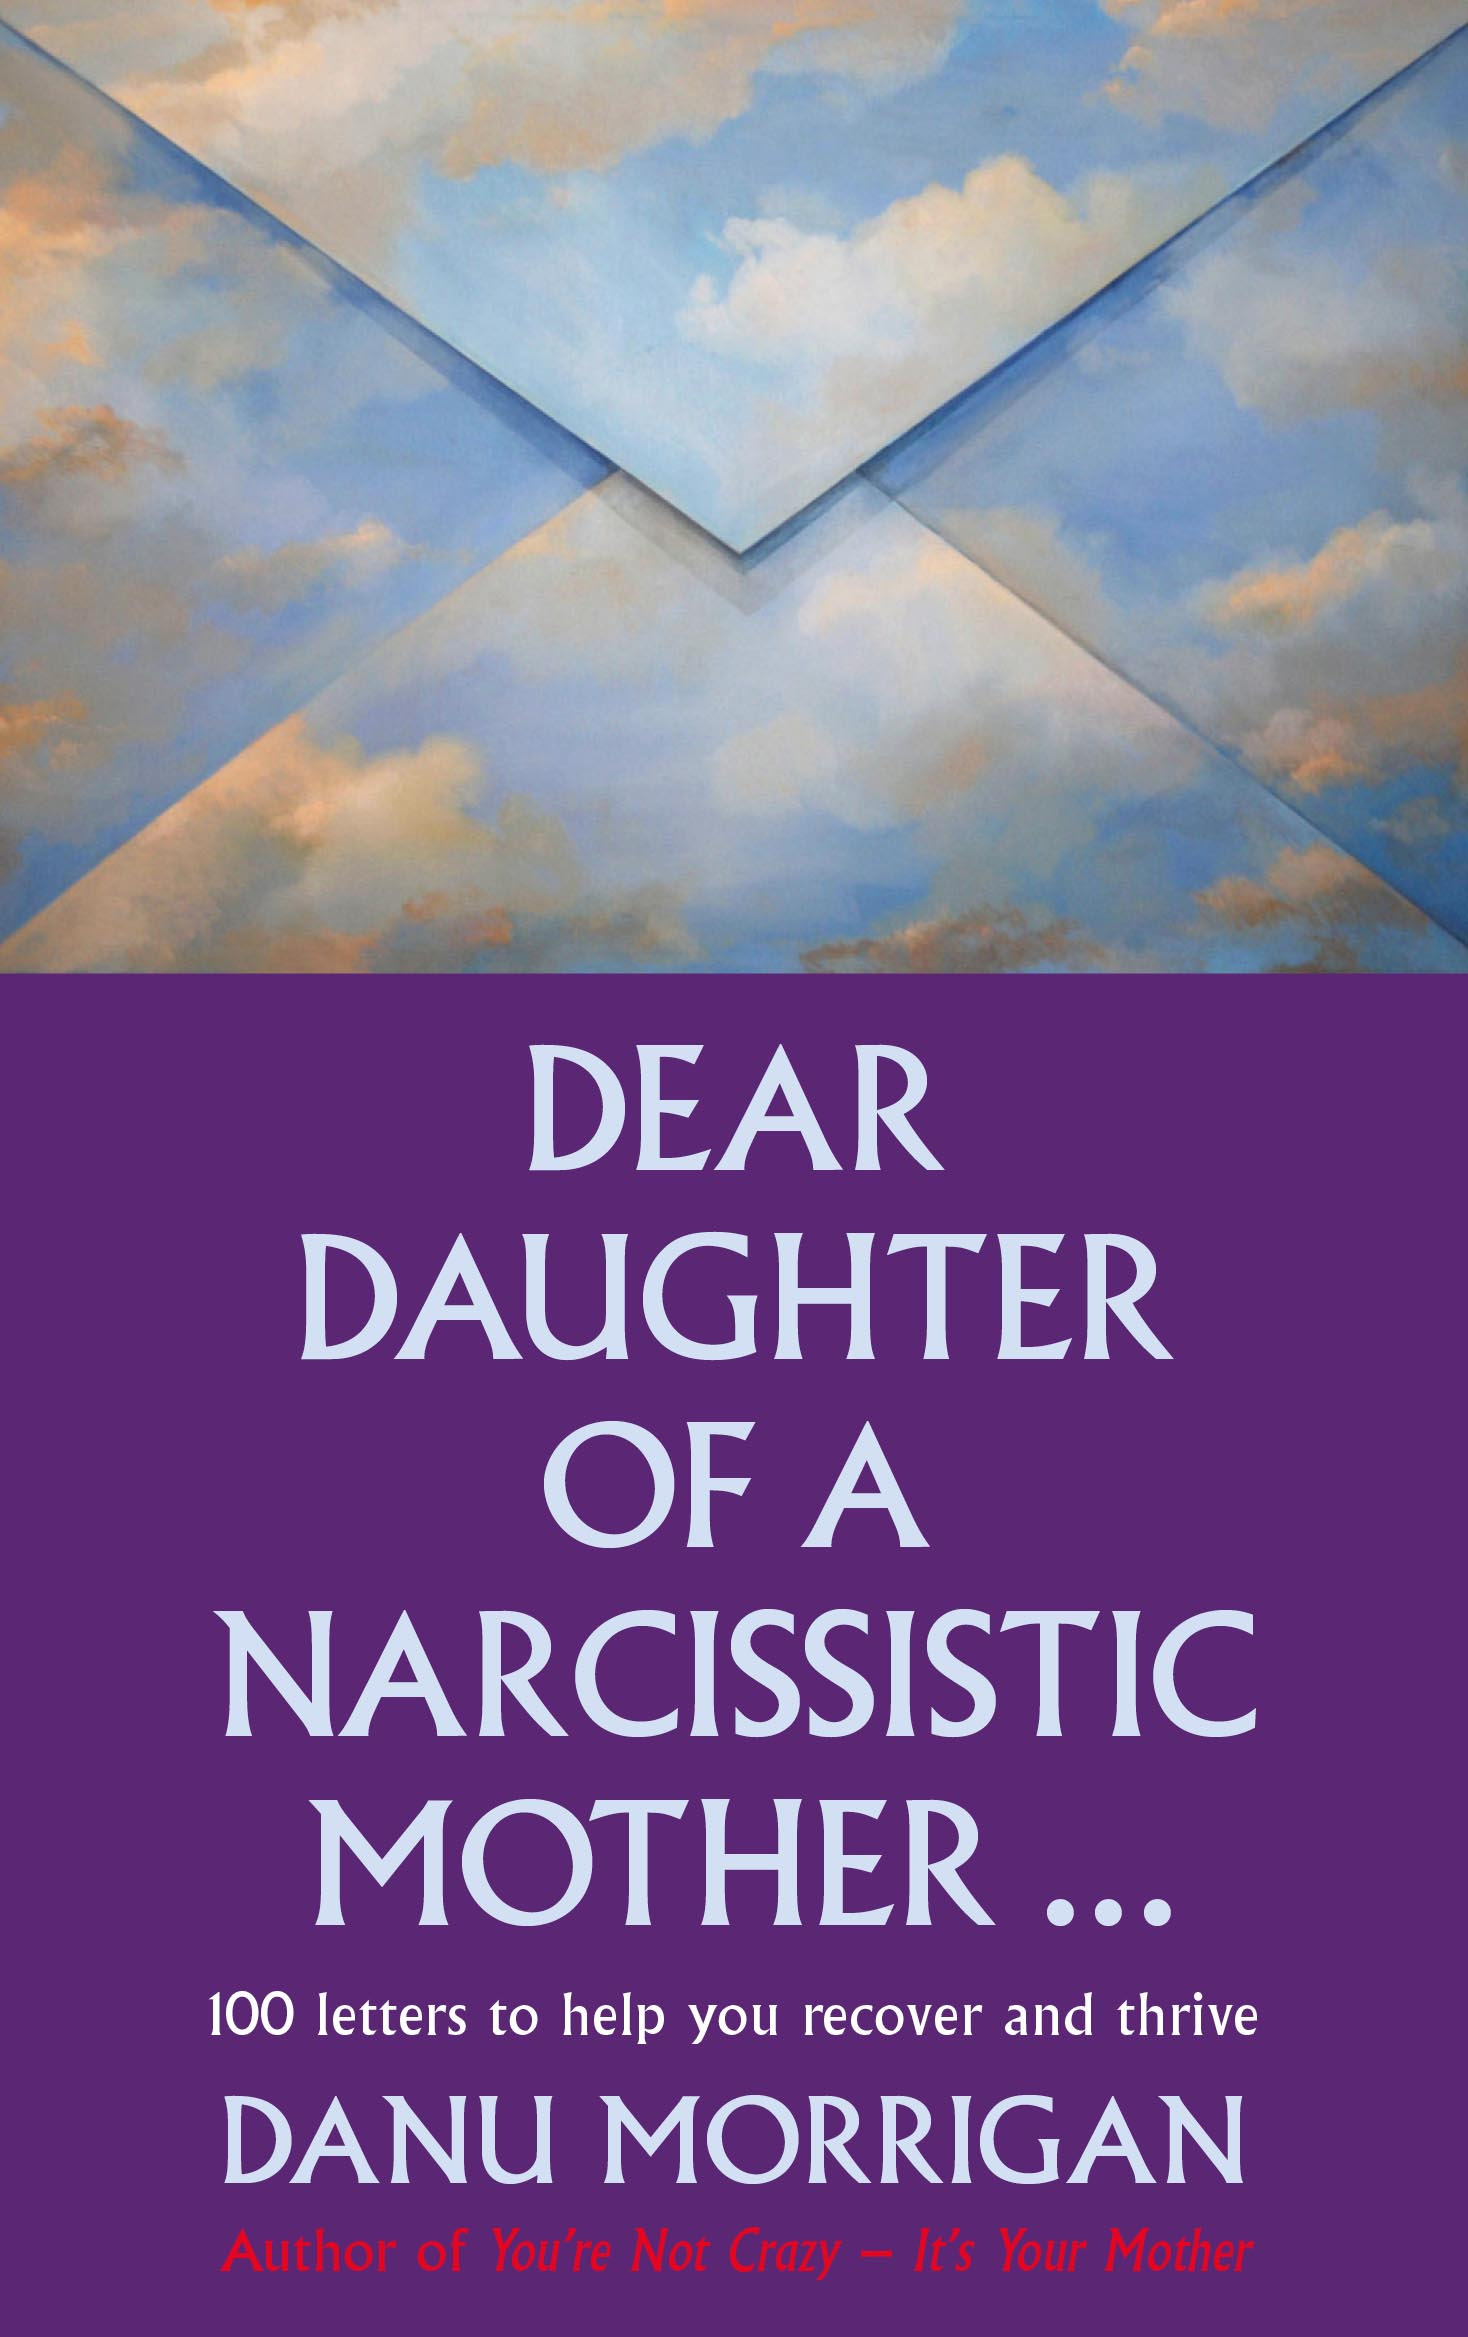 Dear Daughter of a Narcissisitic Mother